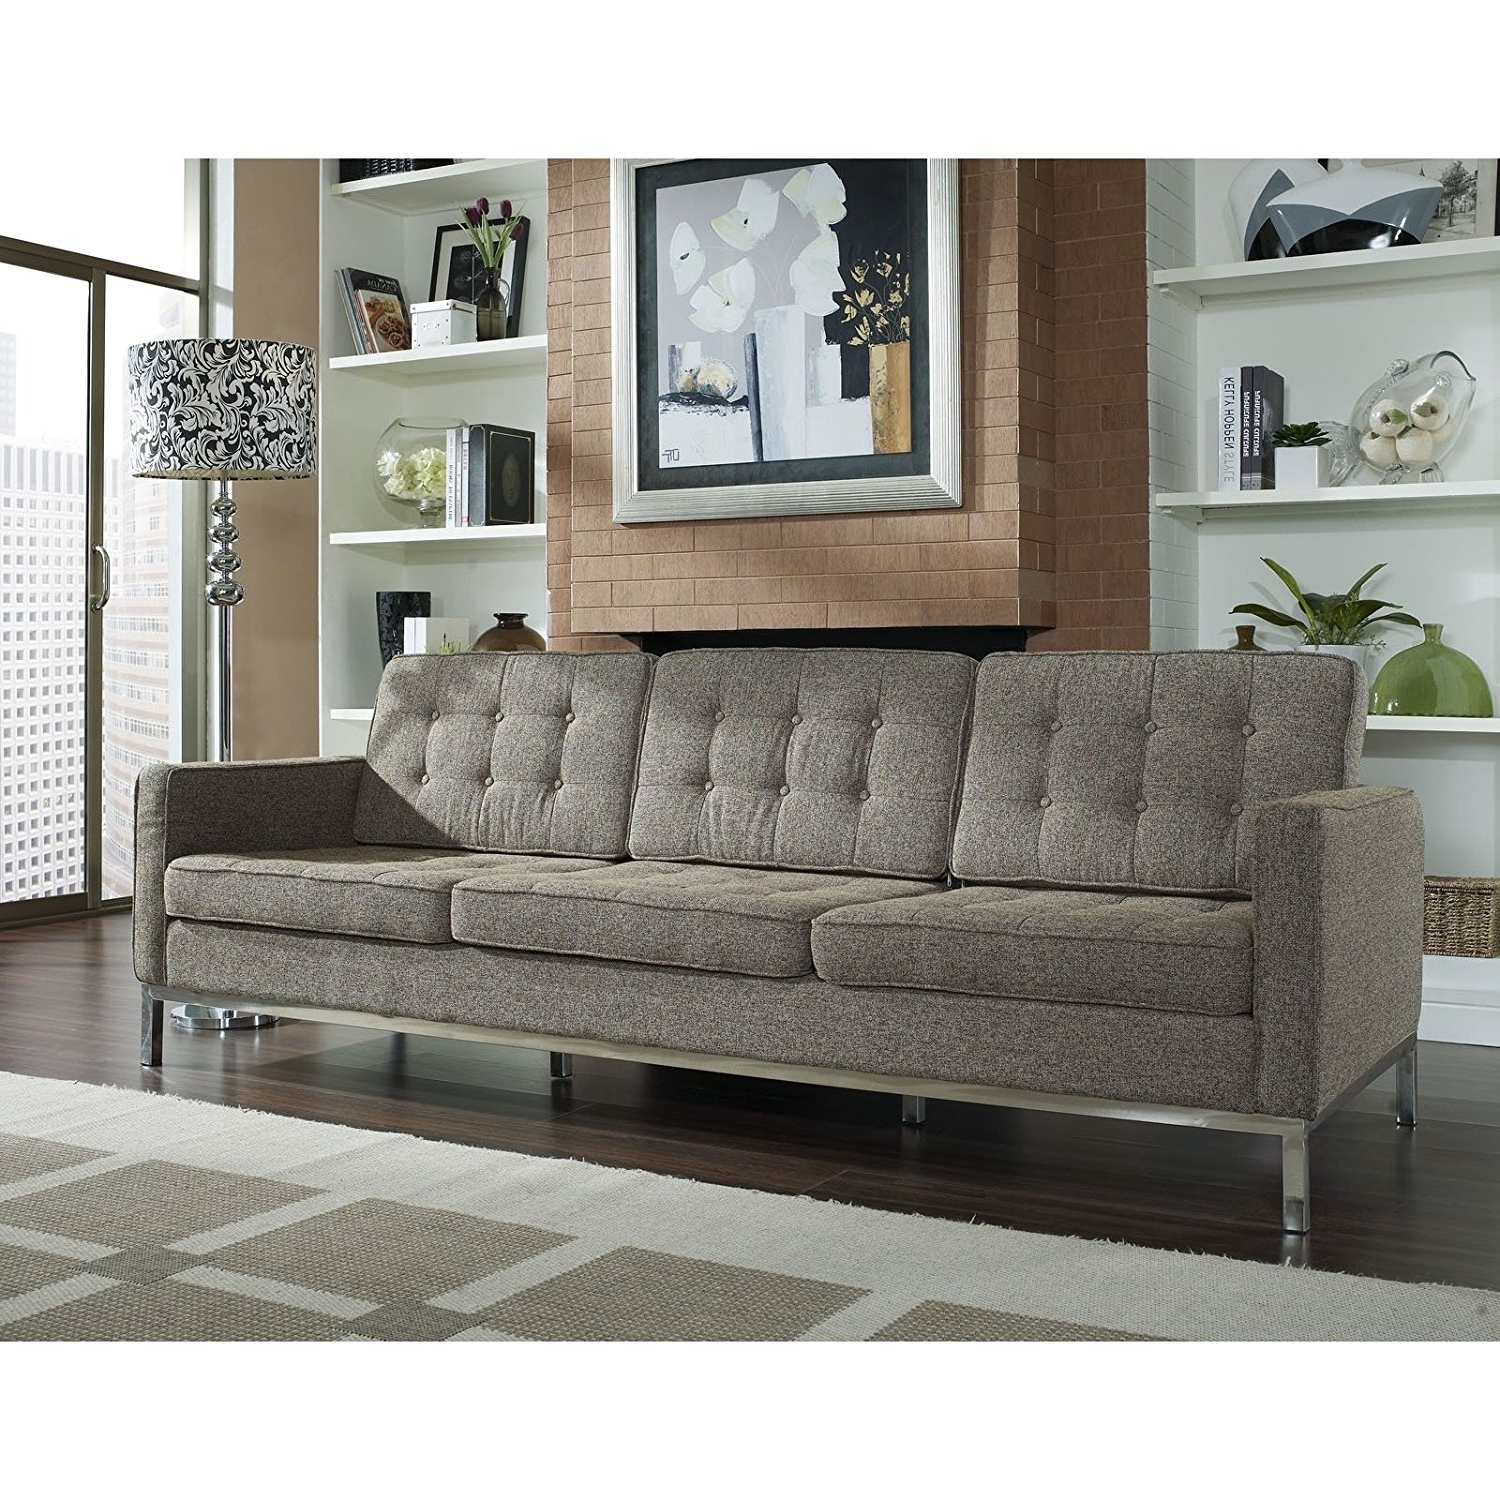 Amazon: Modway Florence Style Sofa In Oatmeal Wool: Kitchen Within Well Known Florence Large Sofas (View 3 of 15)